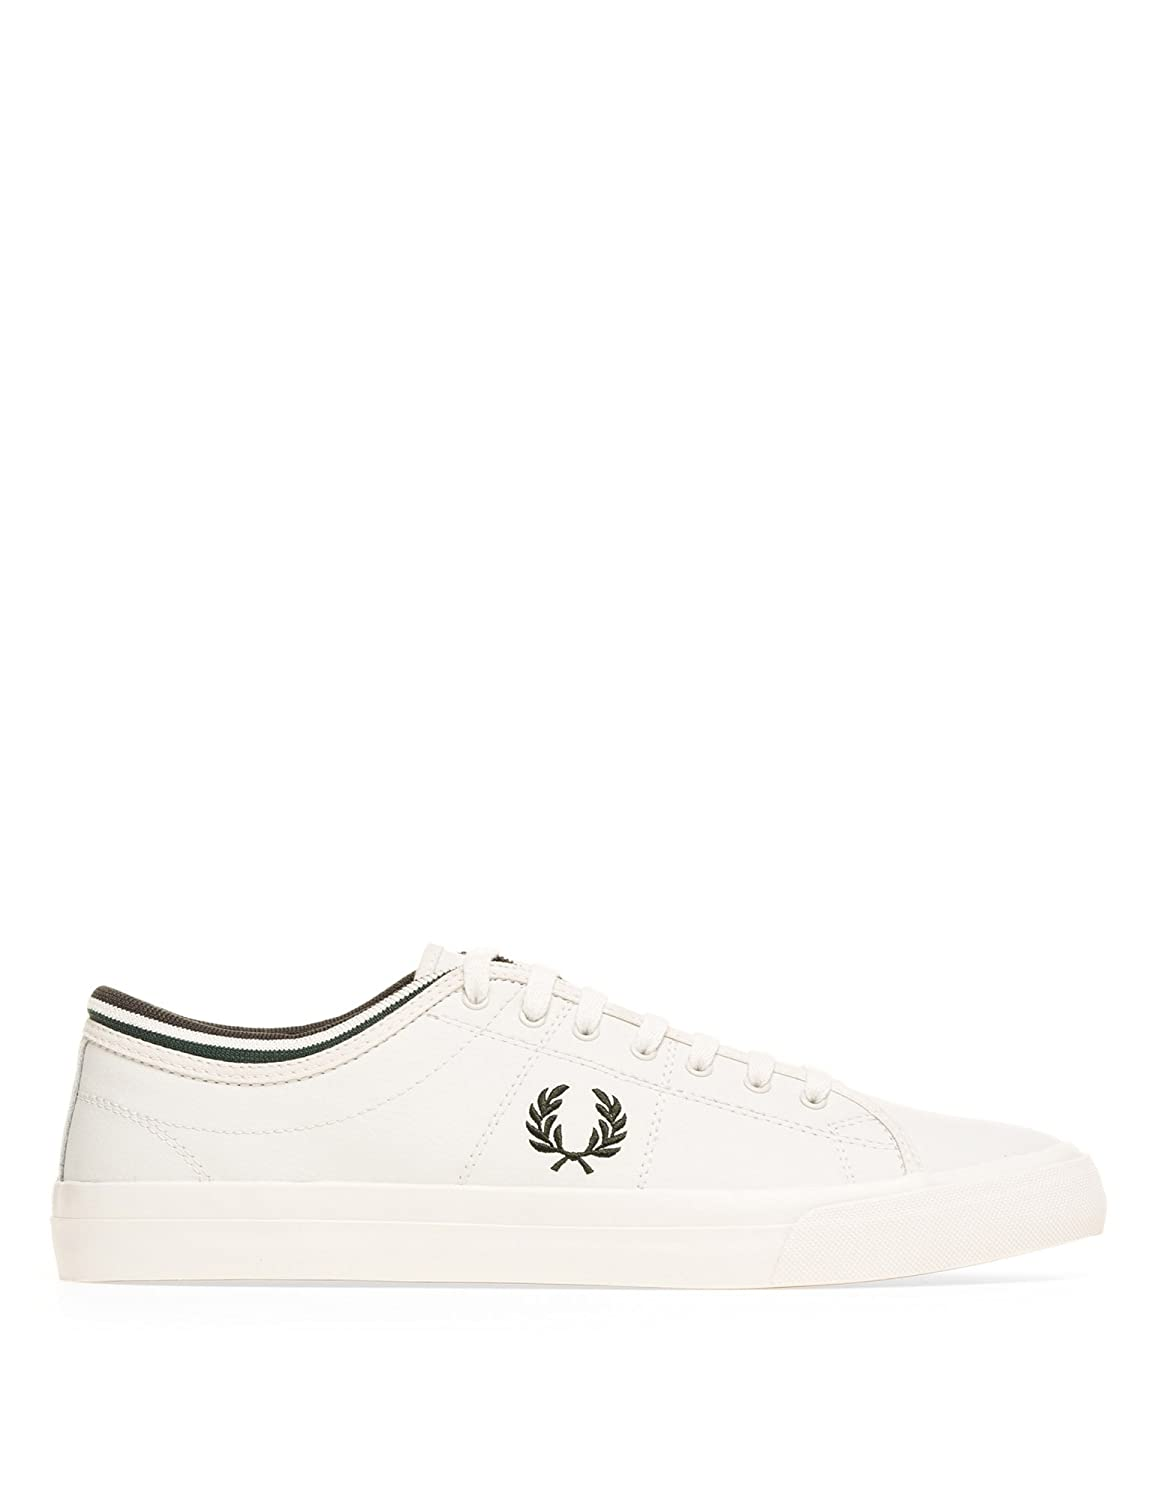 Fred Perry Men's Kendrick Leather Men's White Sneakers Leather With Textile White